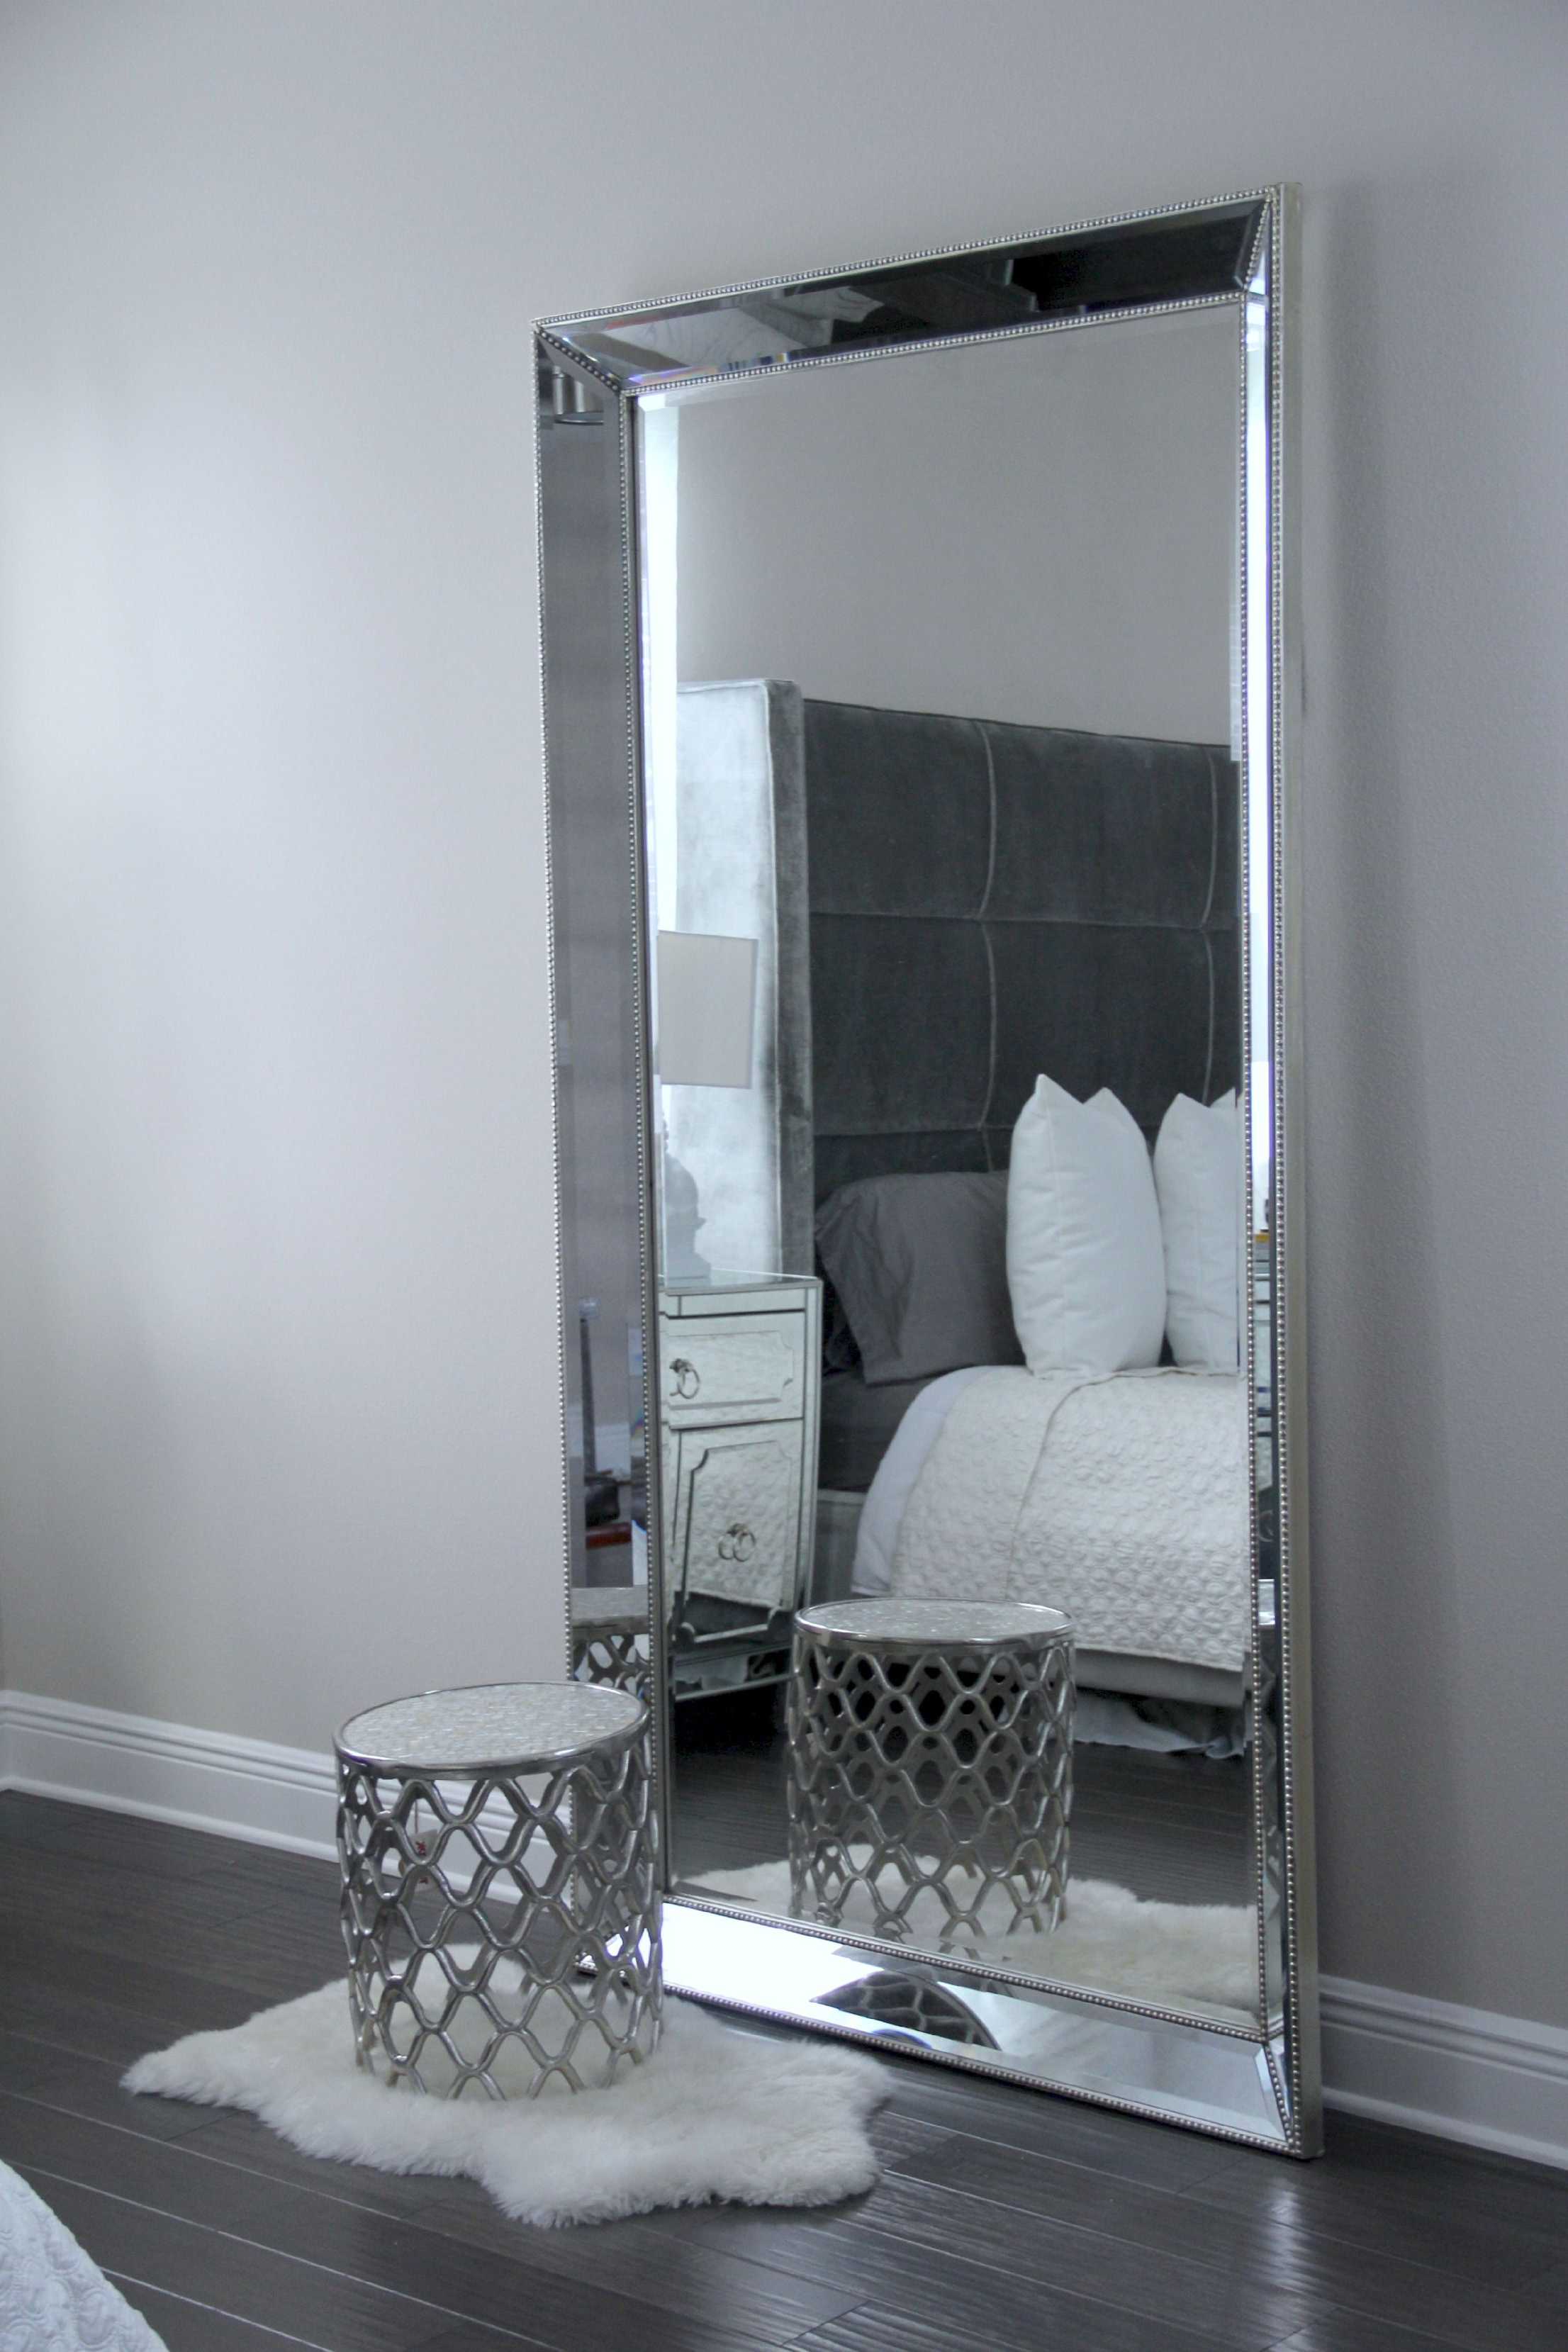 Antique Leaner Mirror For Your Room Decoration Ideas: Silver Leaner Throughout Latest Leaning Wall Mirrors (View 15 of 20)